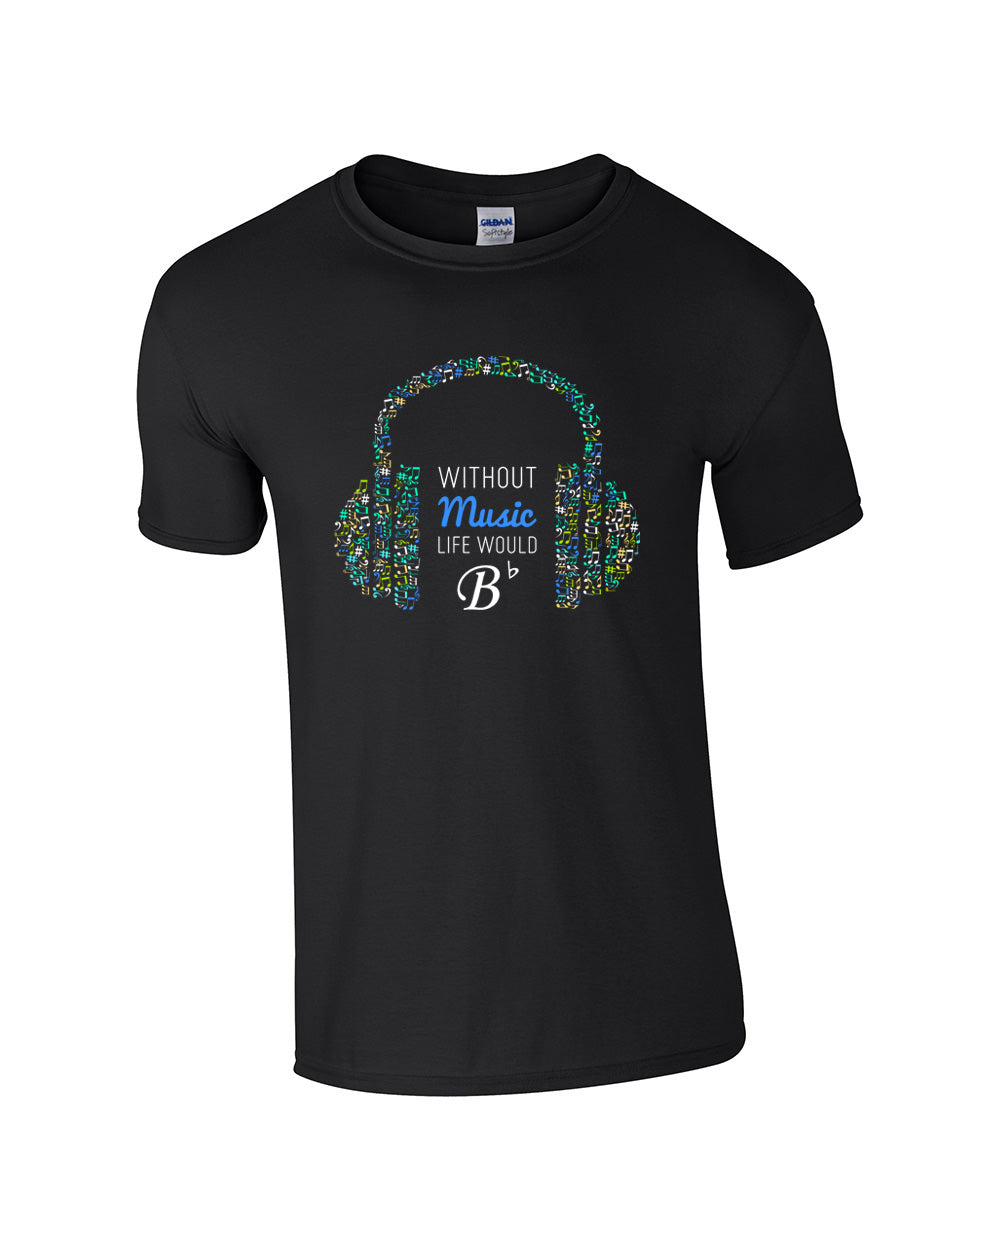 Without Music Make Original Black T-Shirt Mens